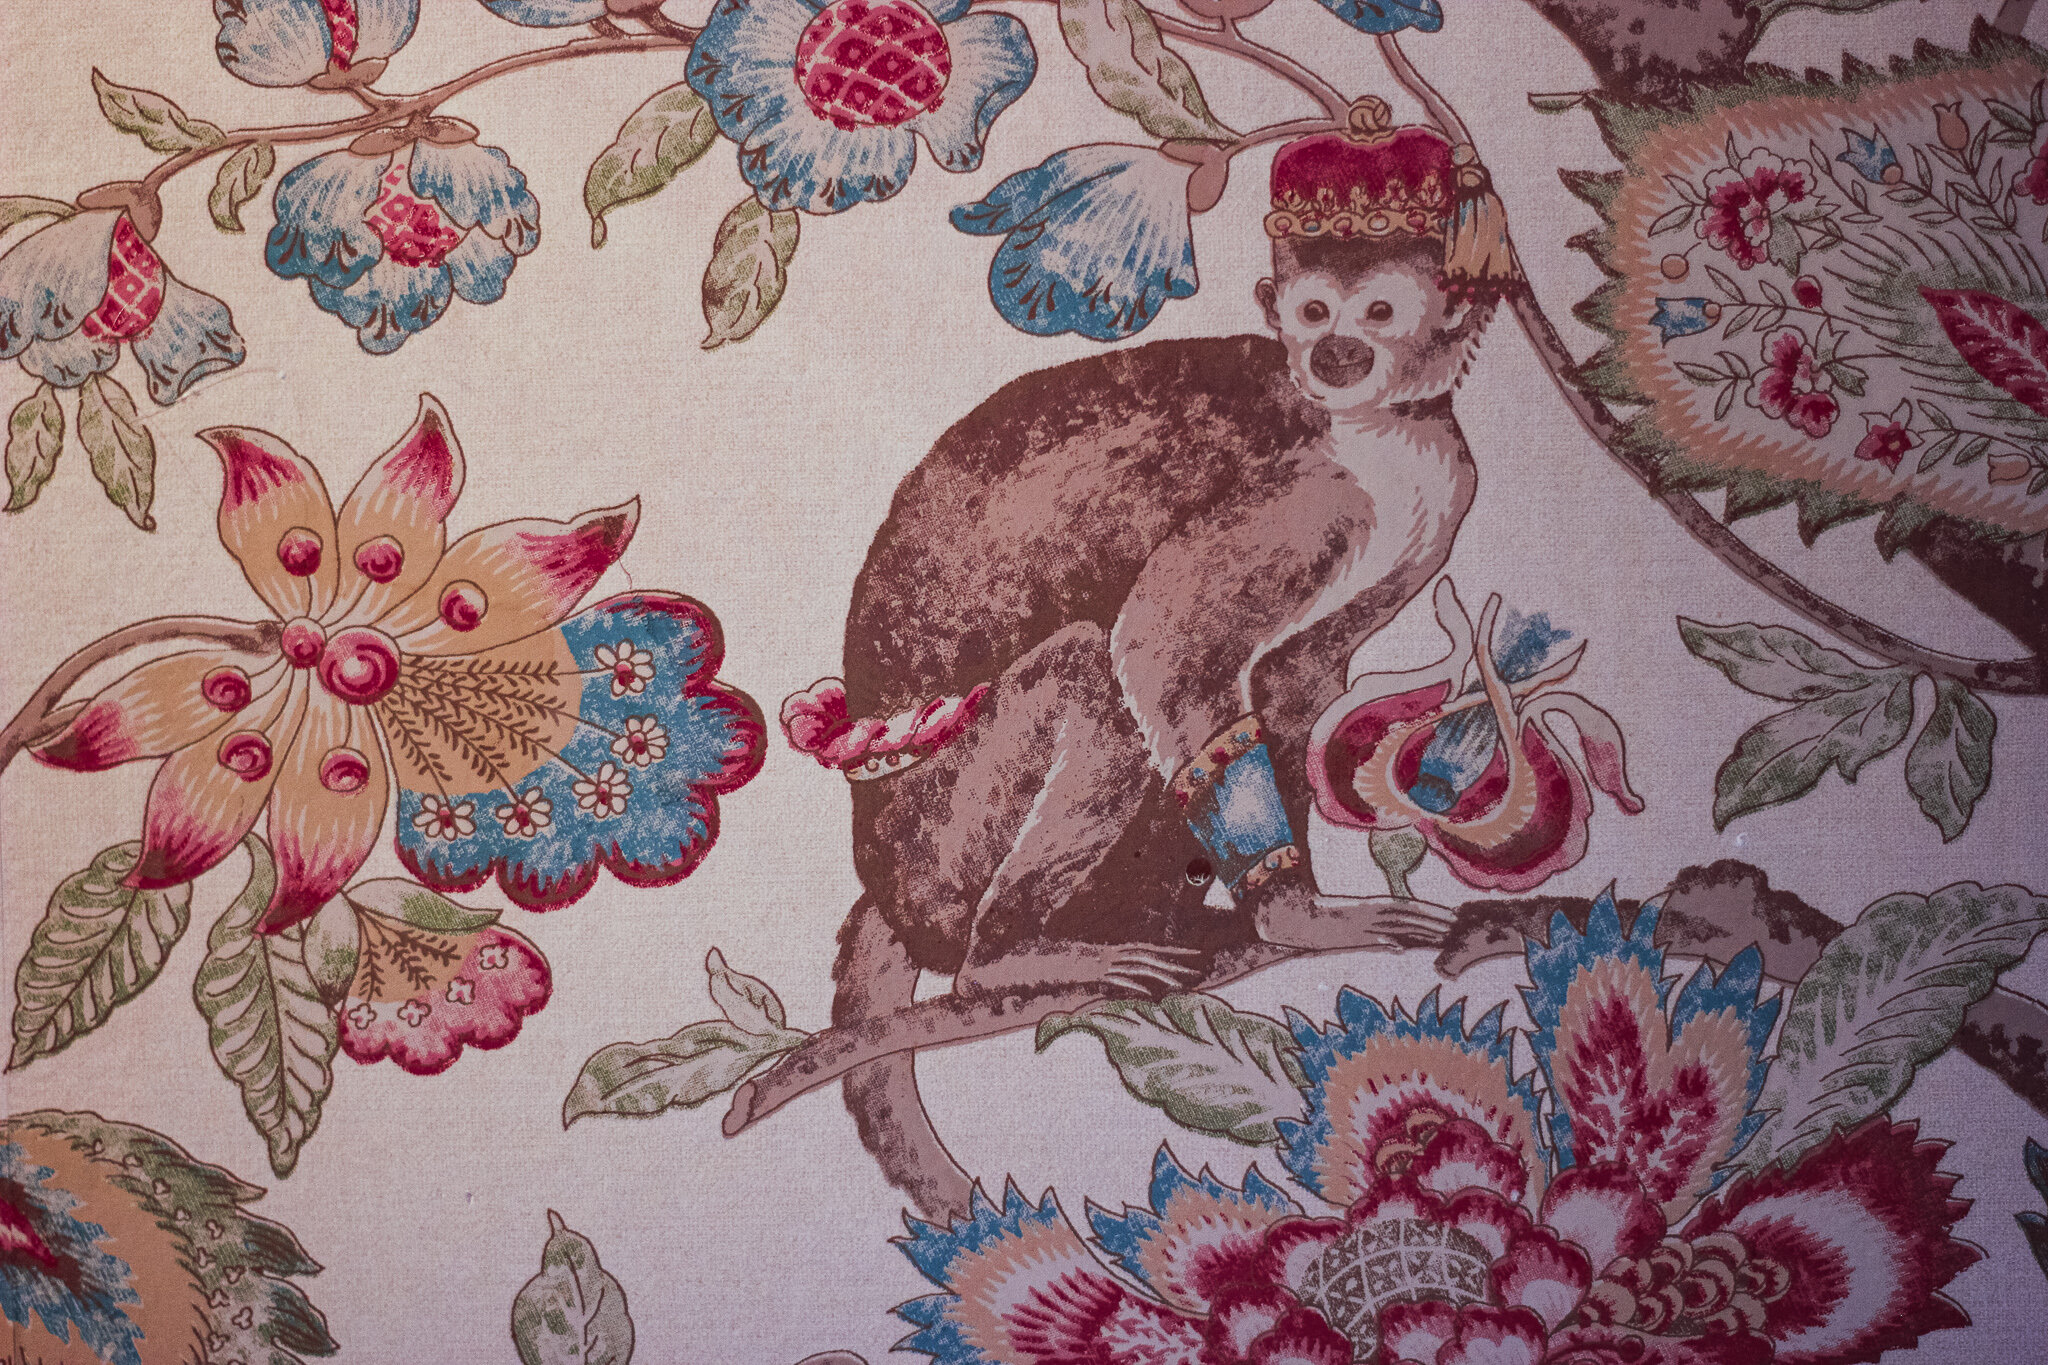 The wallpaper inside the Kipling Suite at the Innisfree Bed and Breakfast (c) Anna Lanfreschi